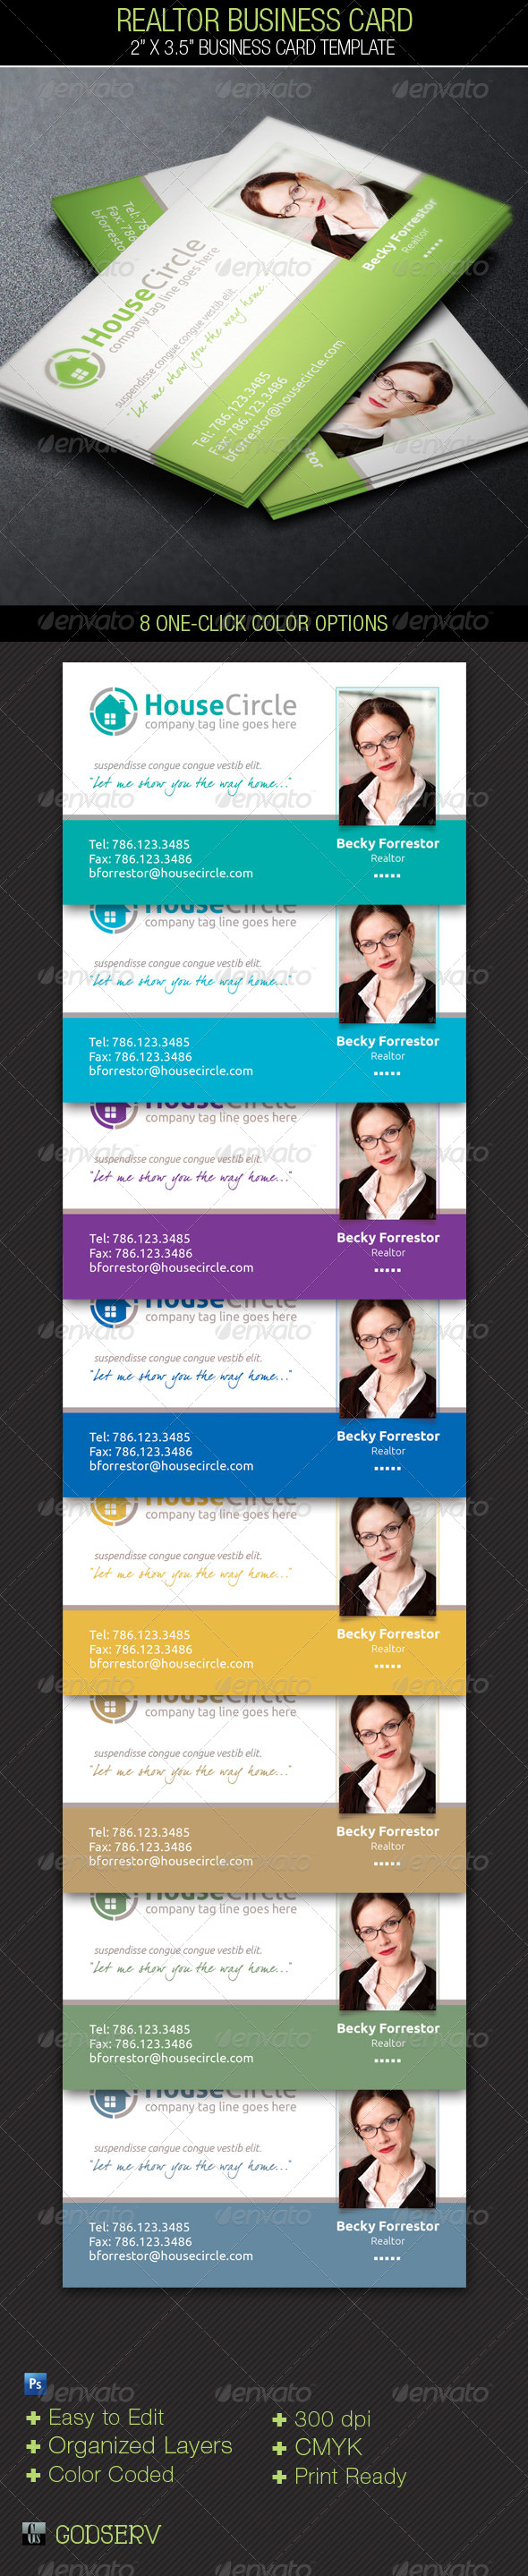 Realtor Business Card Template - Industry Specific Business Cards